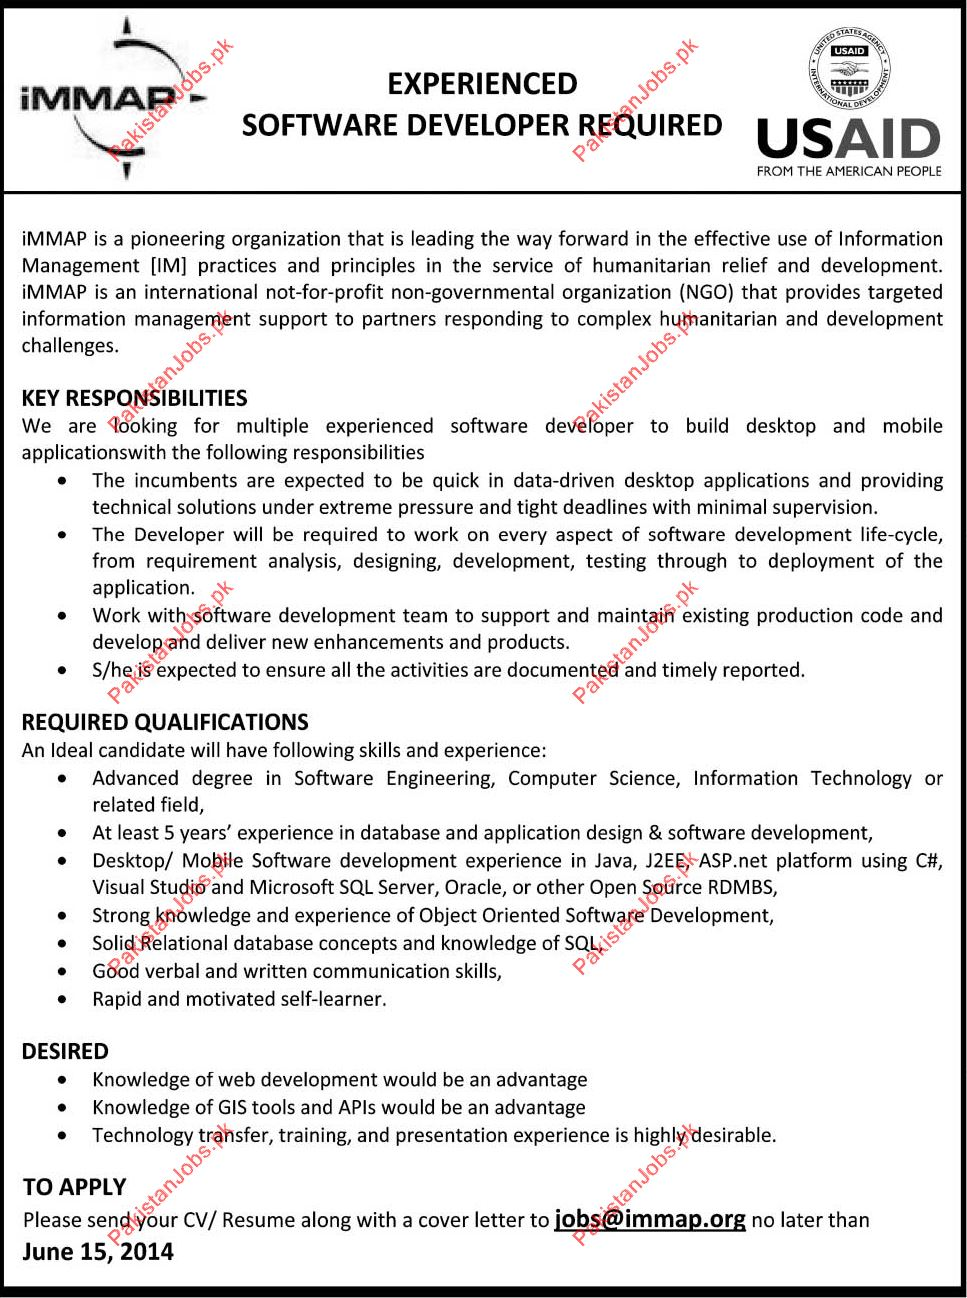 Software Developer Required